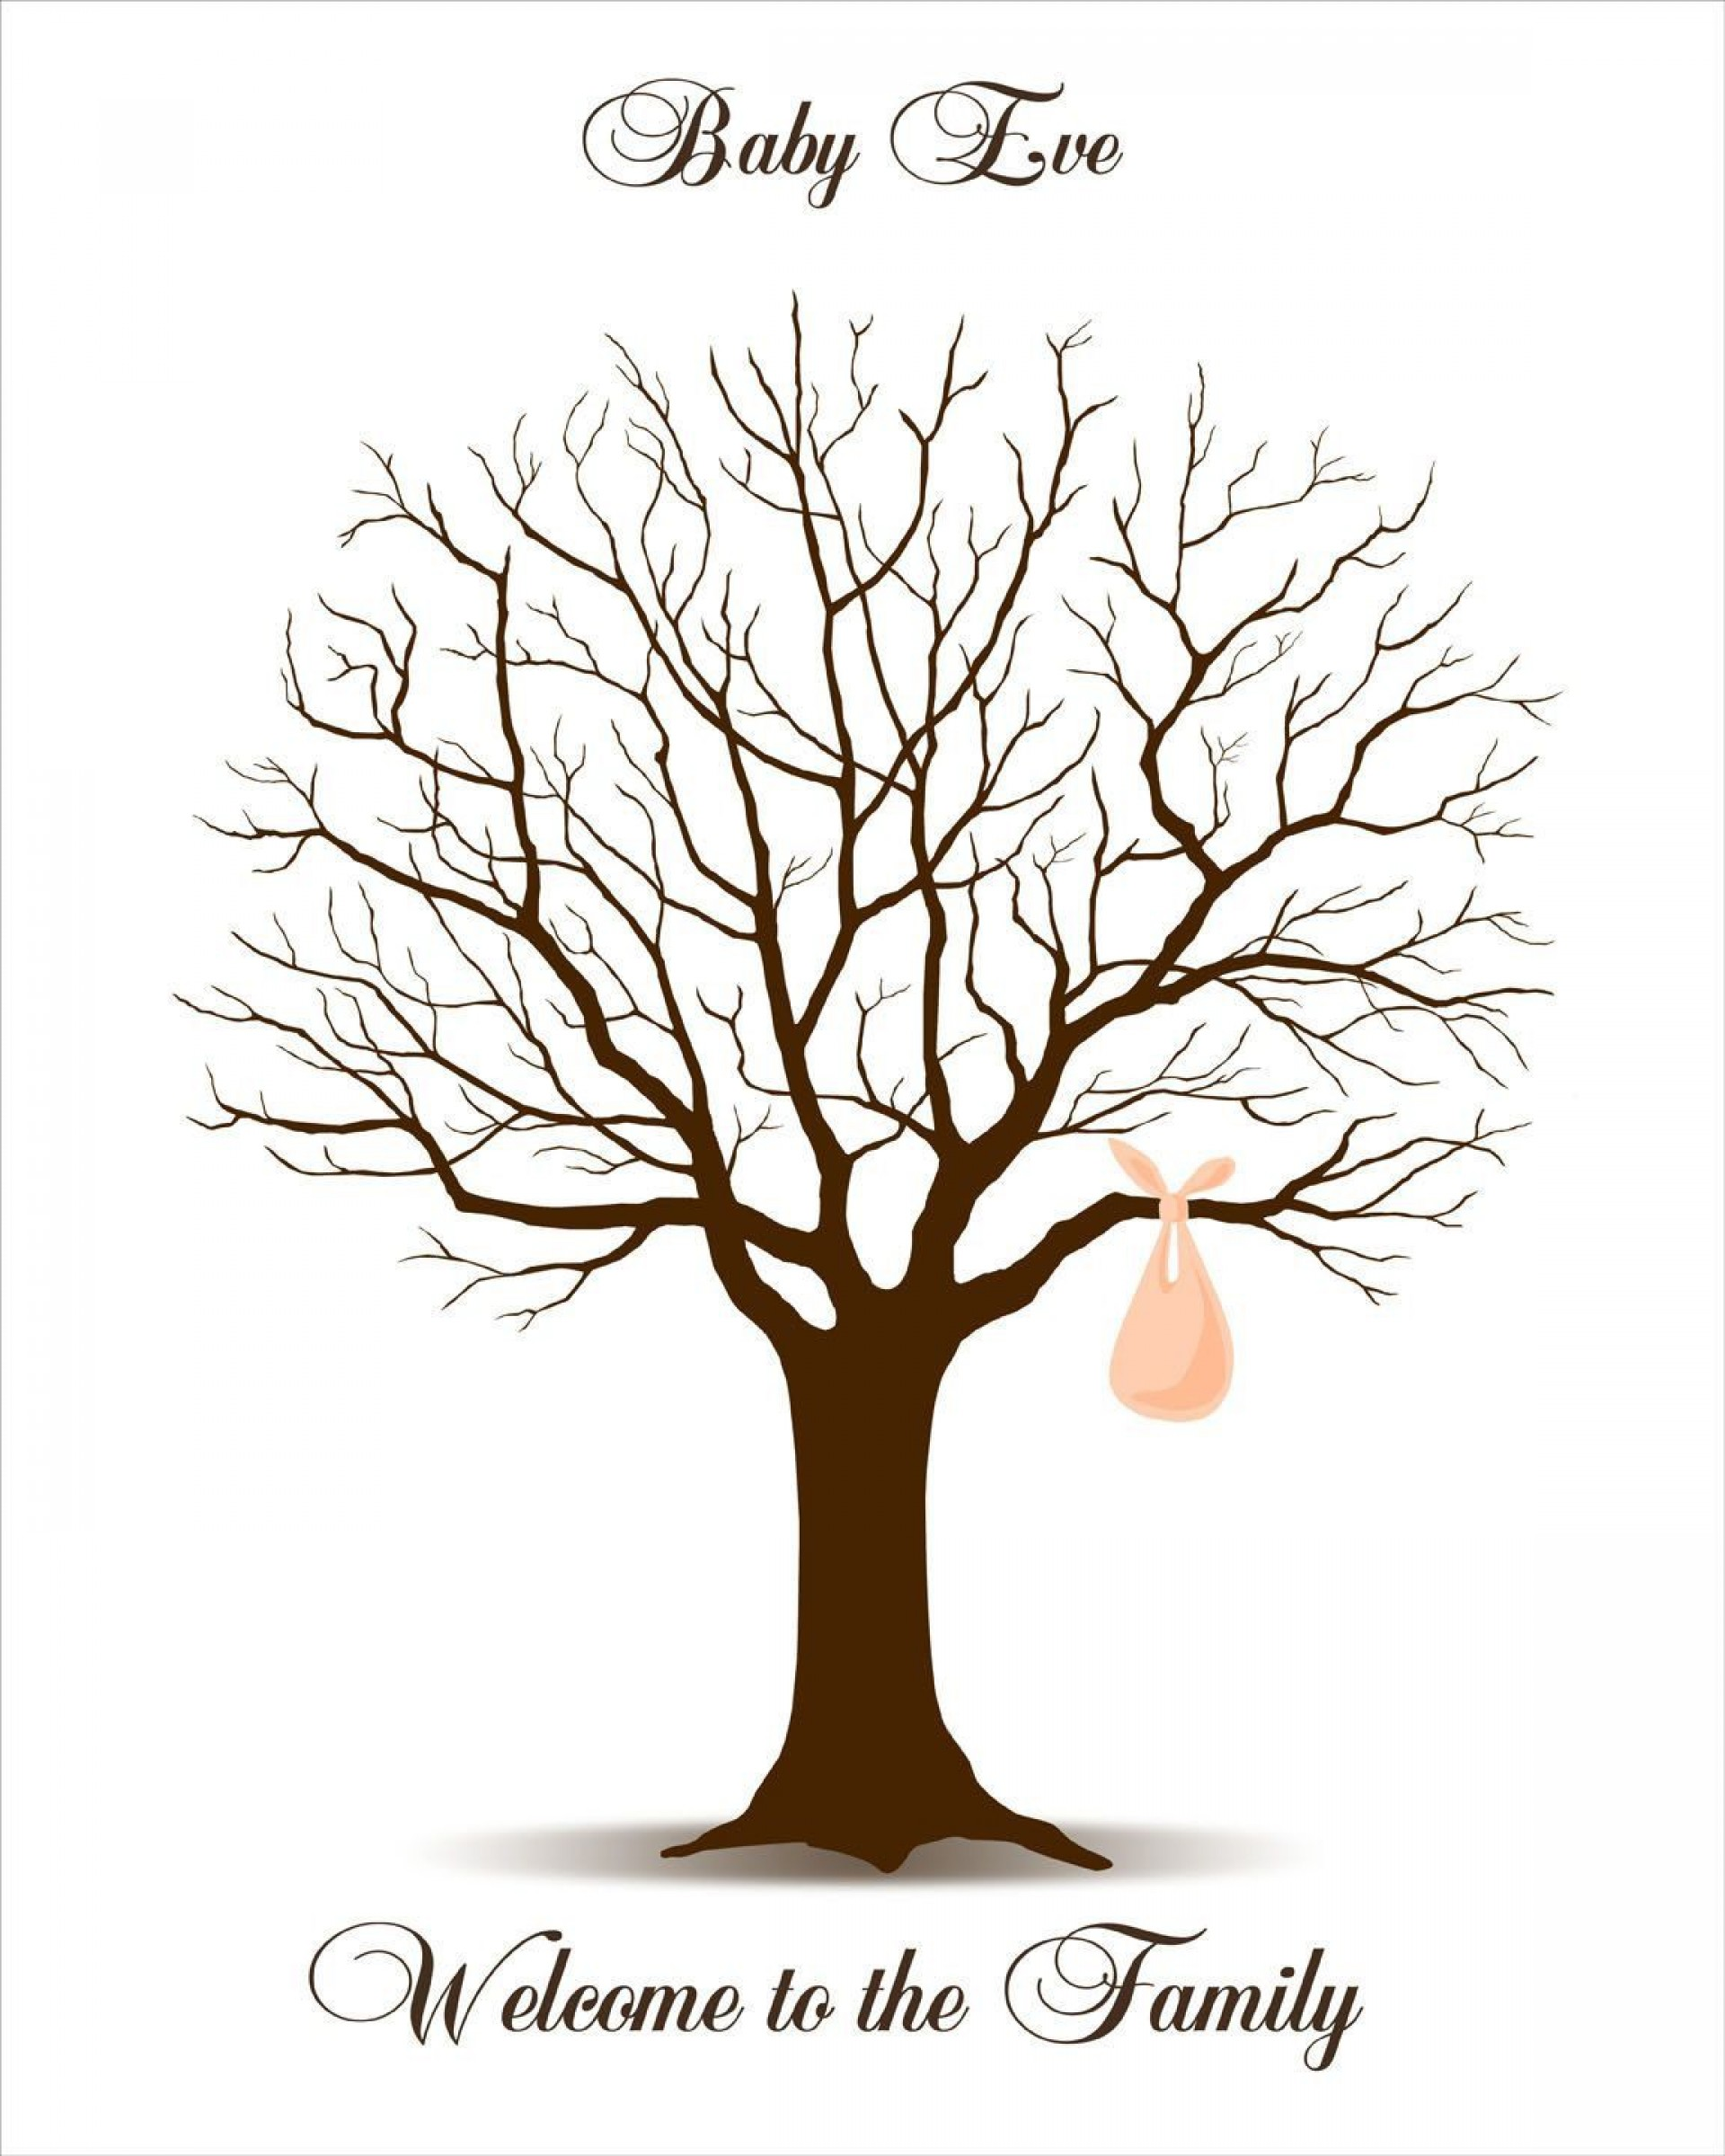 009 Rare Family Tree For Baby Book Template High Def  Printable1920